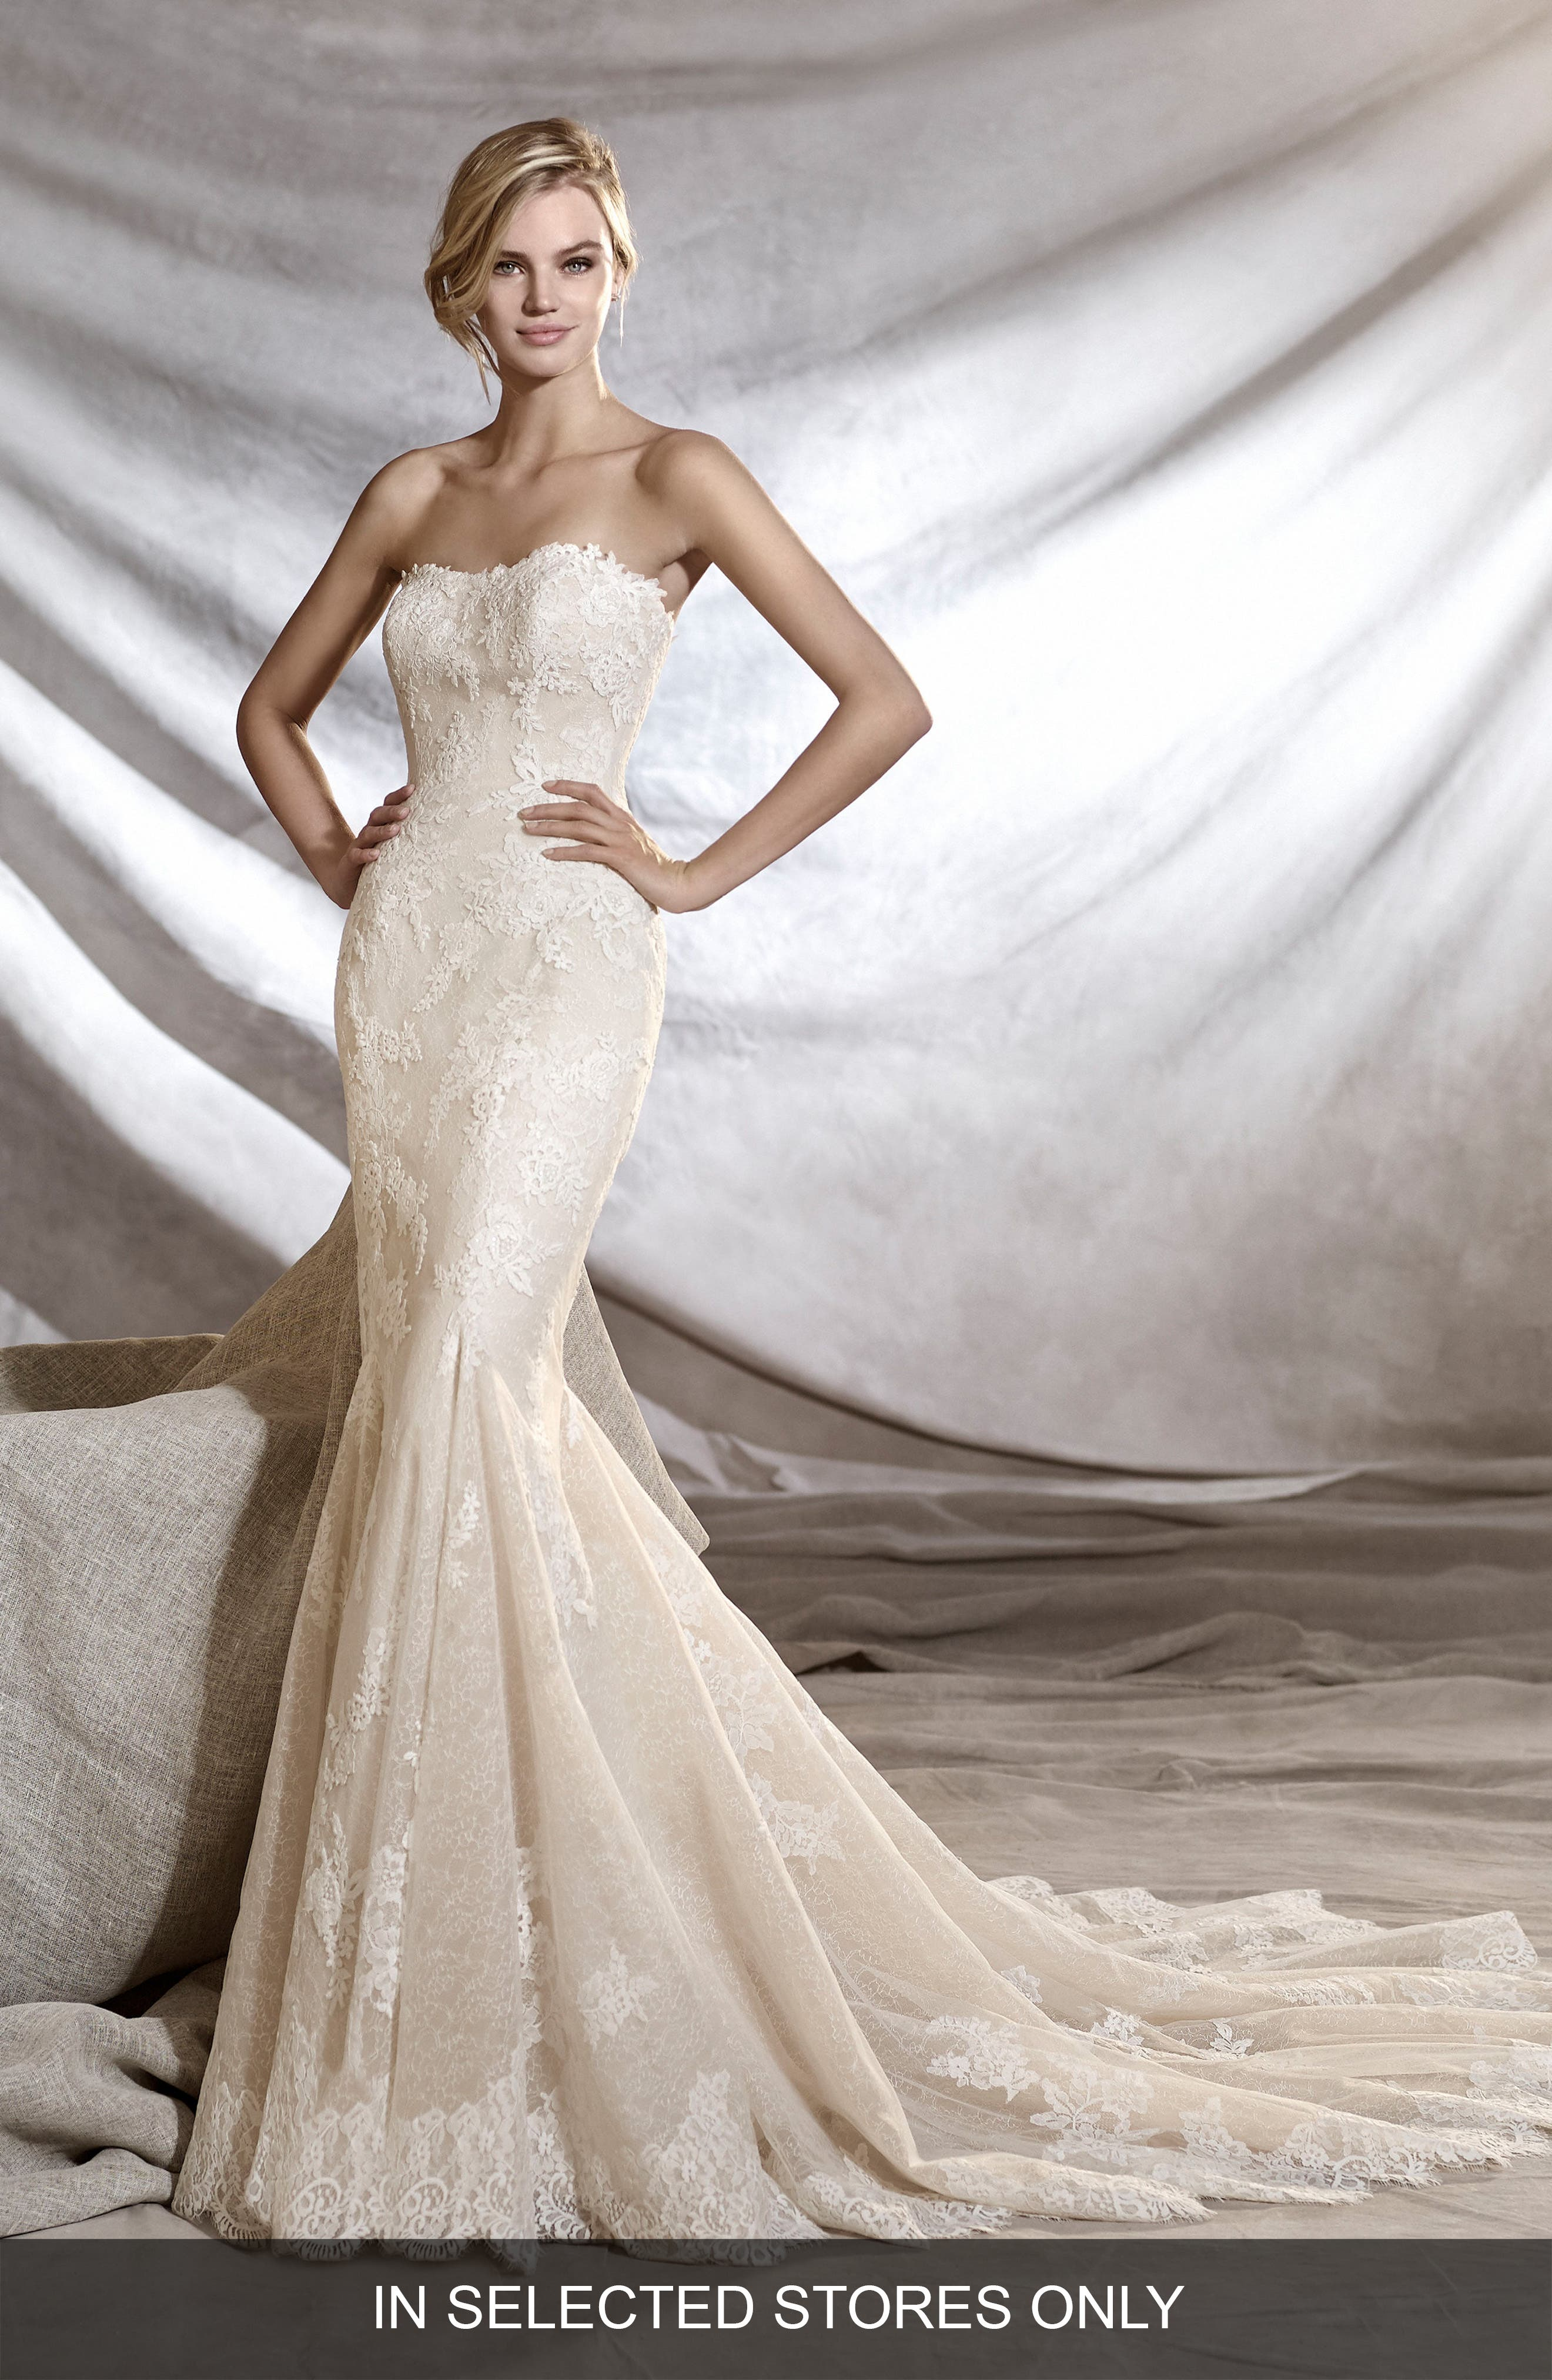 Alternate Image 1 Selected - Pronovias Orinoco Strapless Tulle & Lace Mermaid Gown